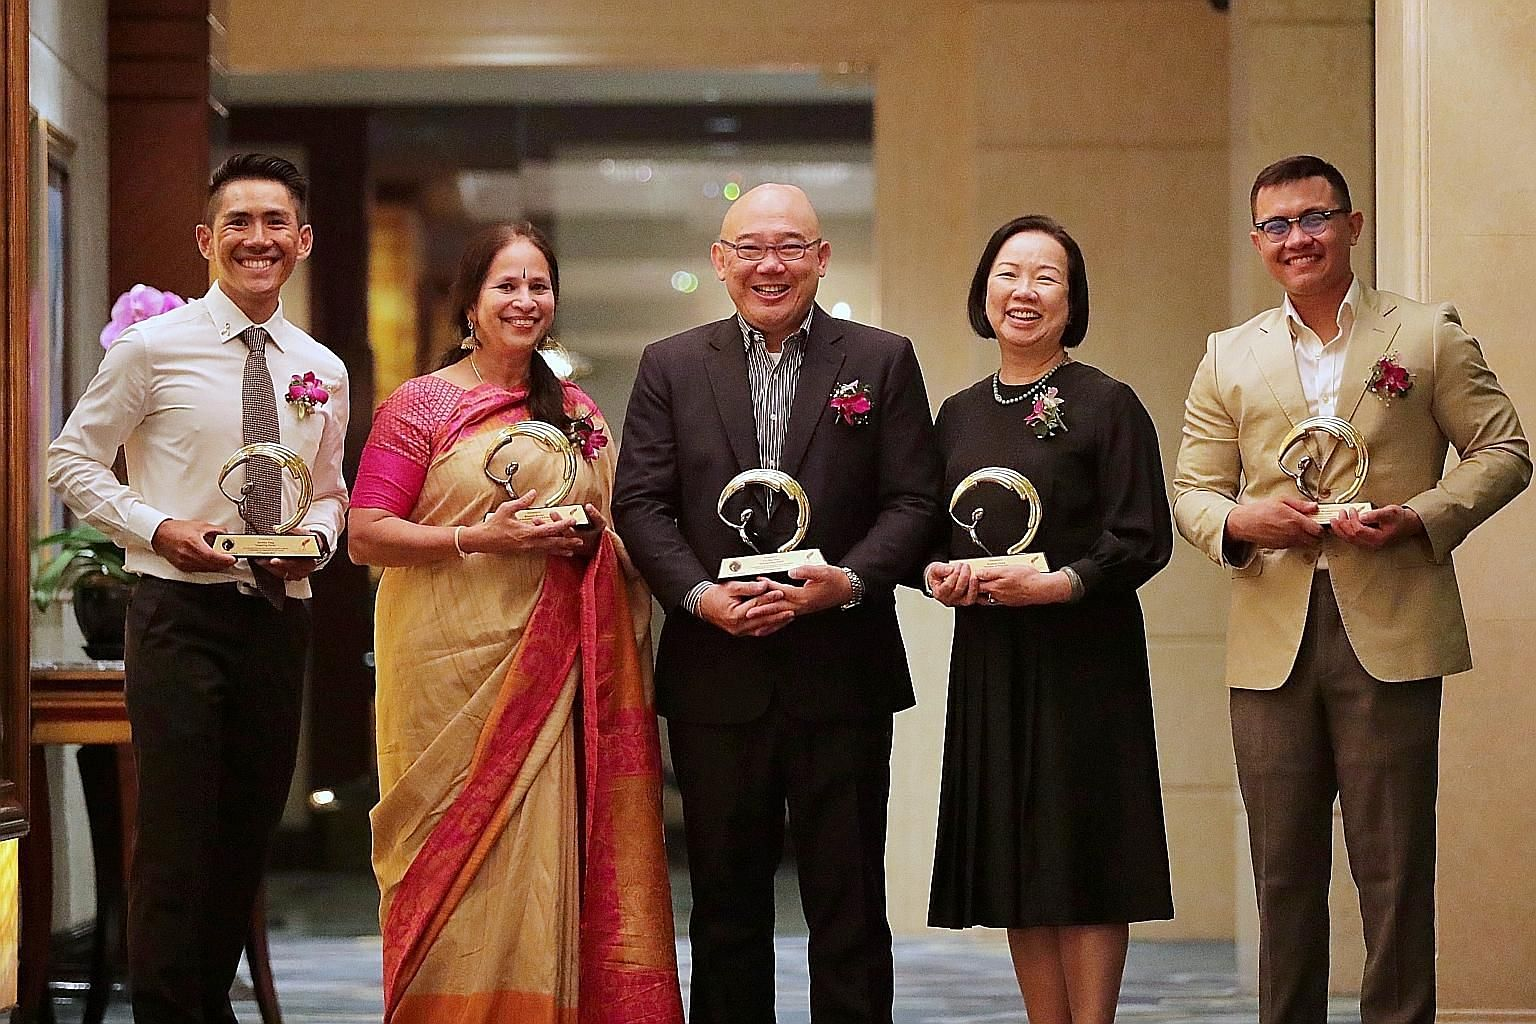 (From far left) Mr Jeremy Tong, Dr Bhavani Sriram, Mr Foo Say Thye, Madam Rowena Leong and Mr Aminur Rasyid Mohamed Anwar were the five winners of the Silent Heroes Awards conferred by the Civilians Association of Singapore yesterday.